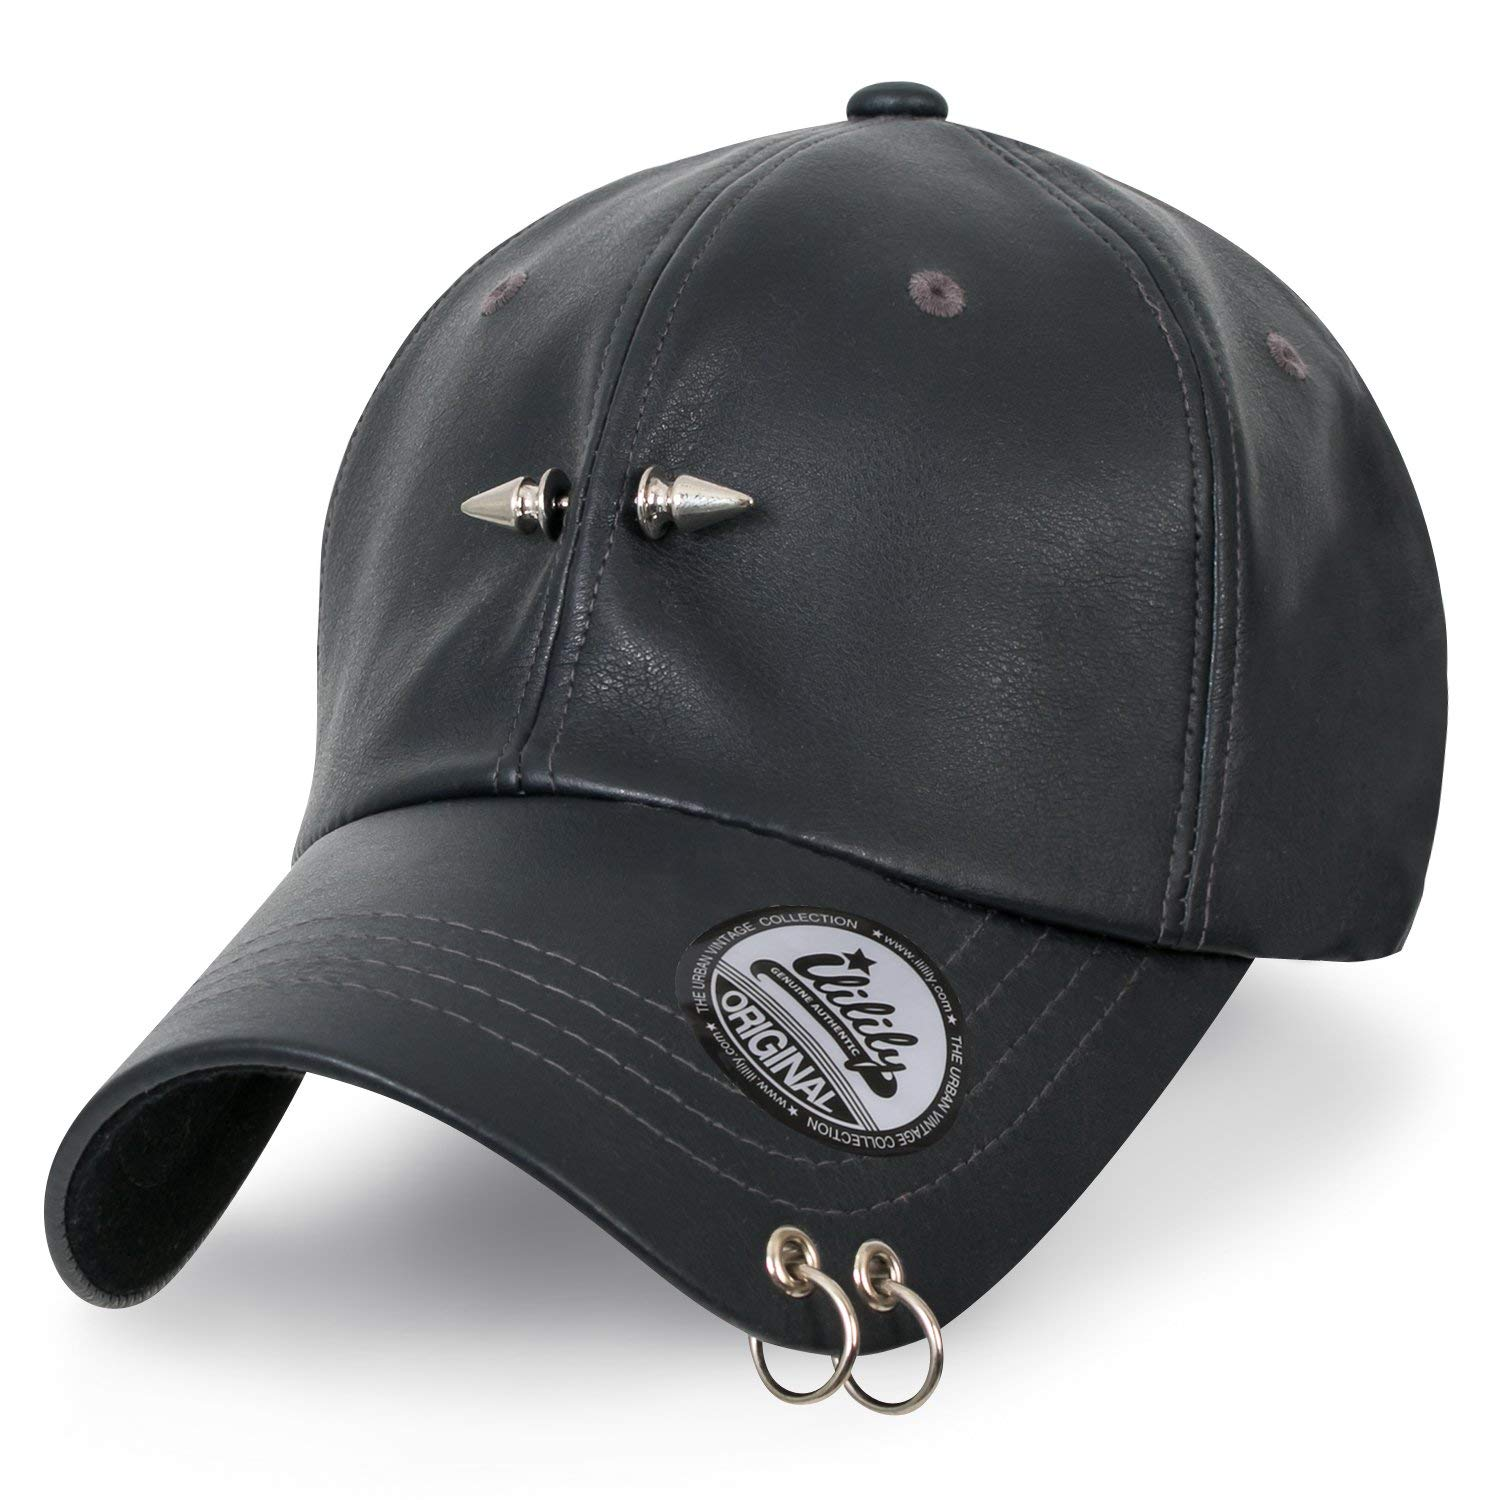 d48a9694fd5c8 Get Quotations · ililily Piercing Barbell Clip Ring Faux Leather Studded  Baseball Strap Cap Hat